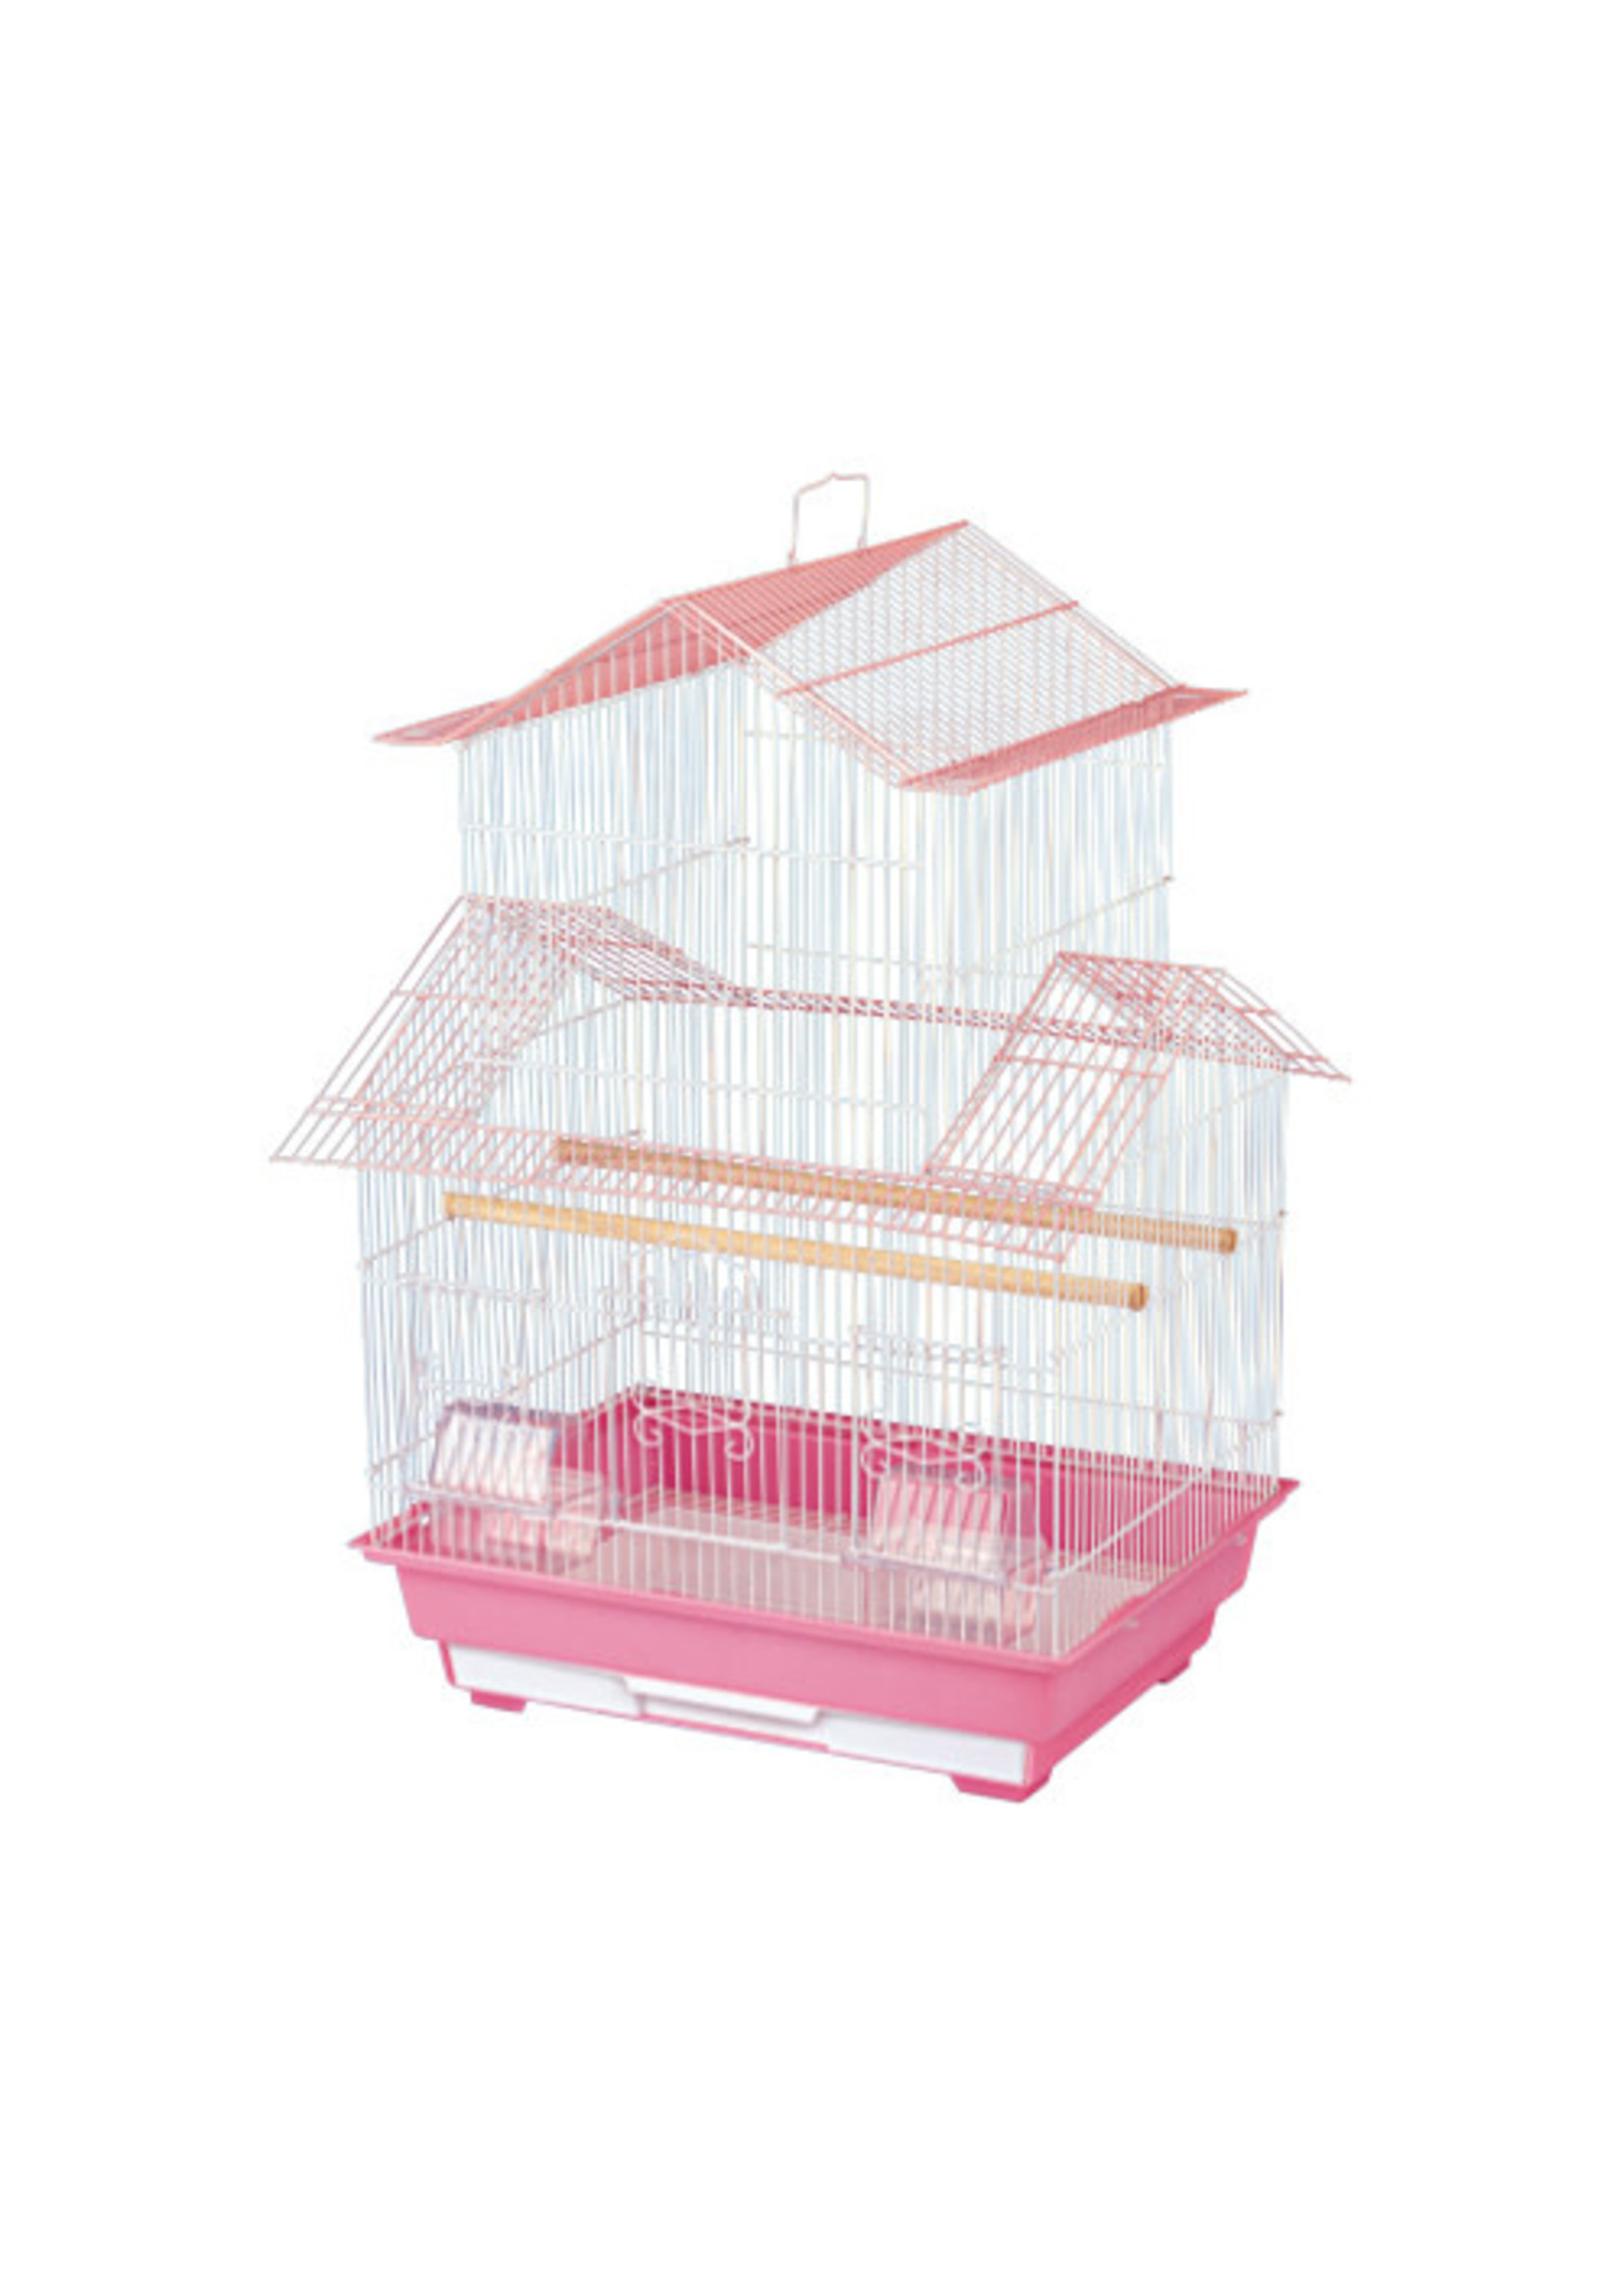 Kings Cages Kings Petite Cage House Style ES1814